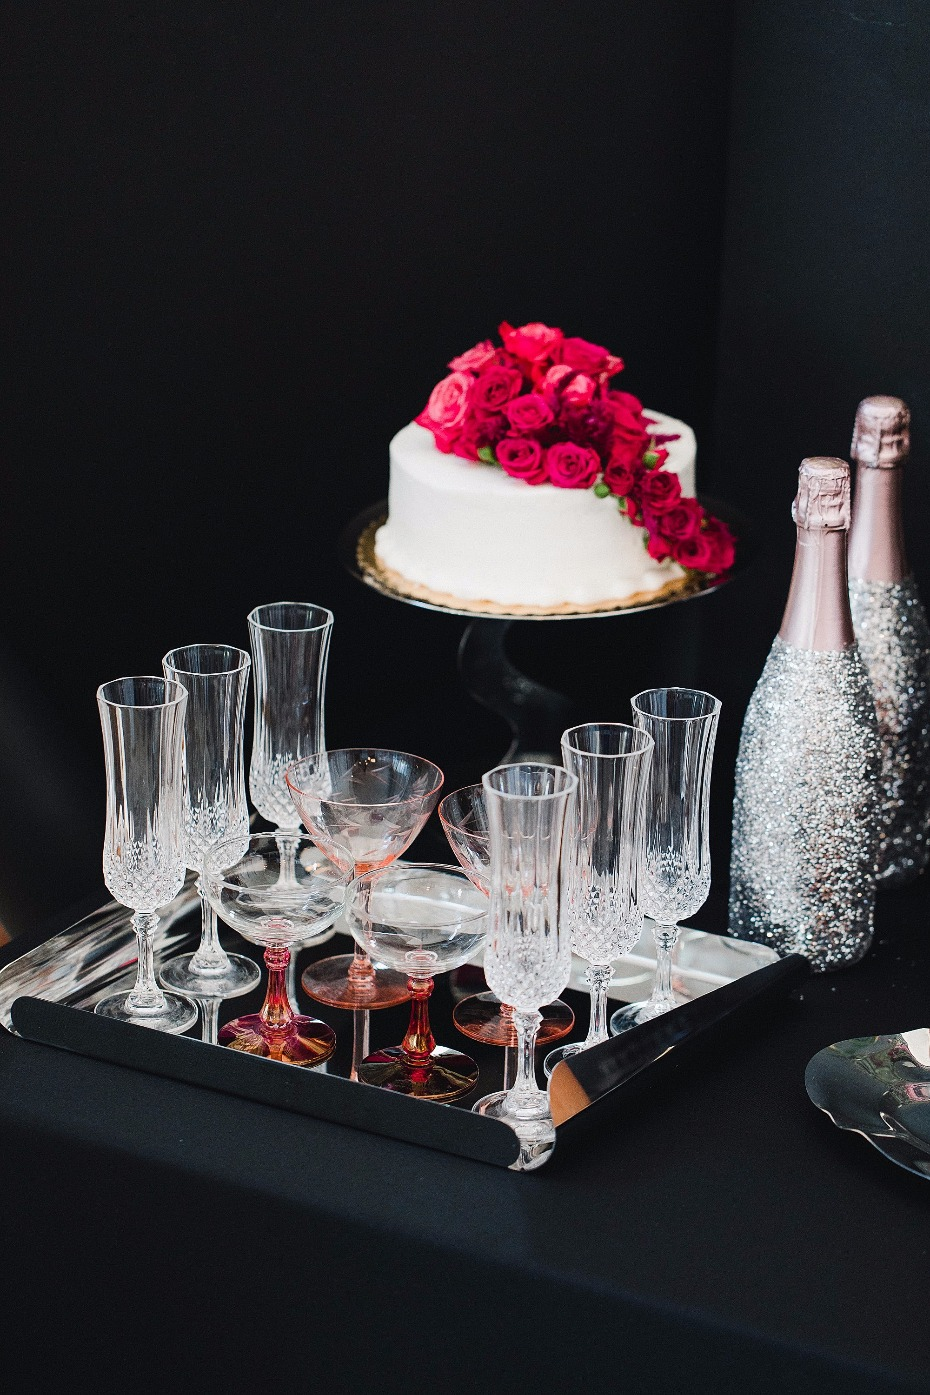 tray with Champagne flutes on it